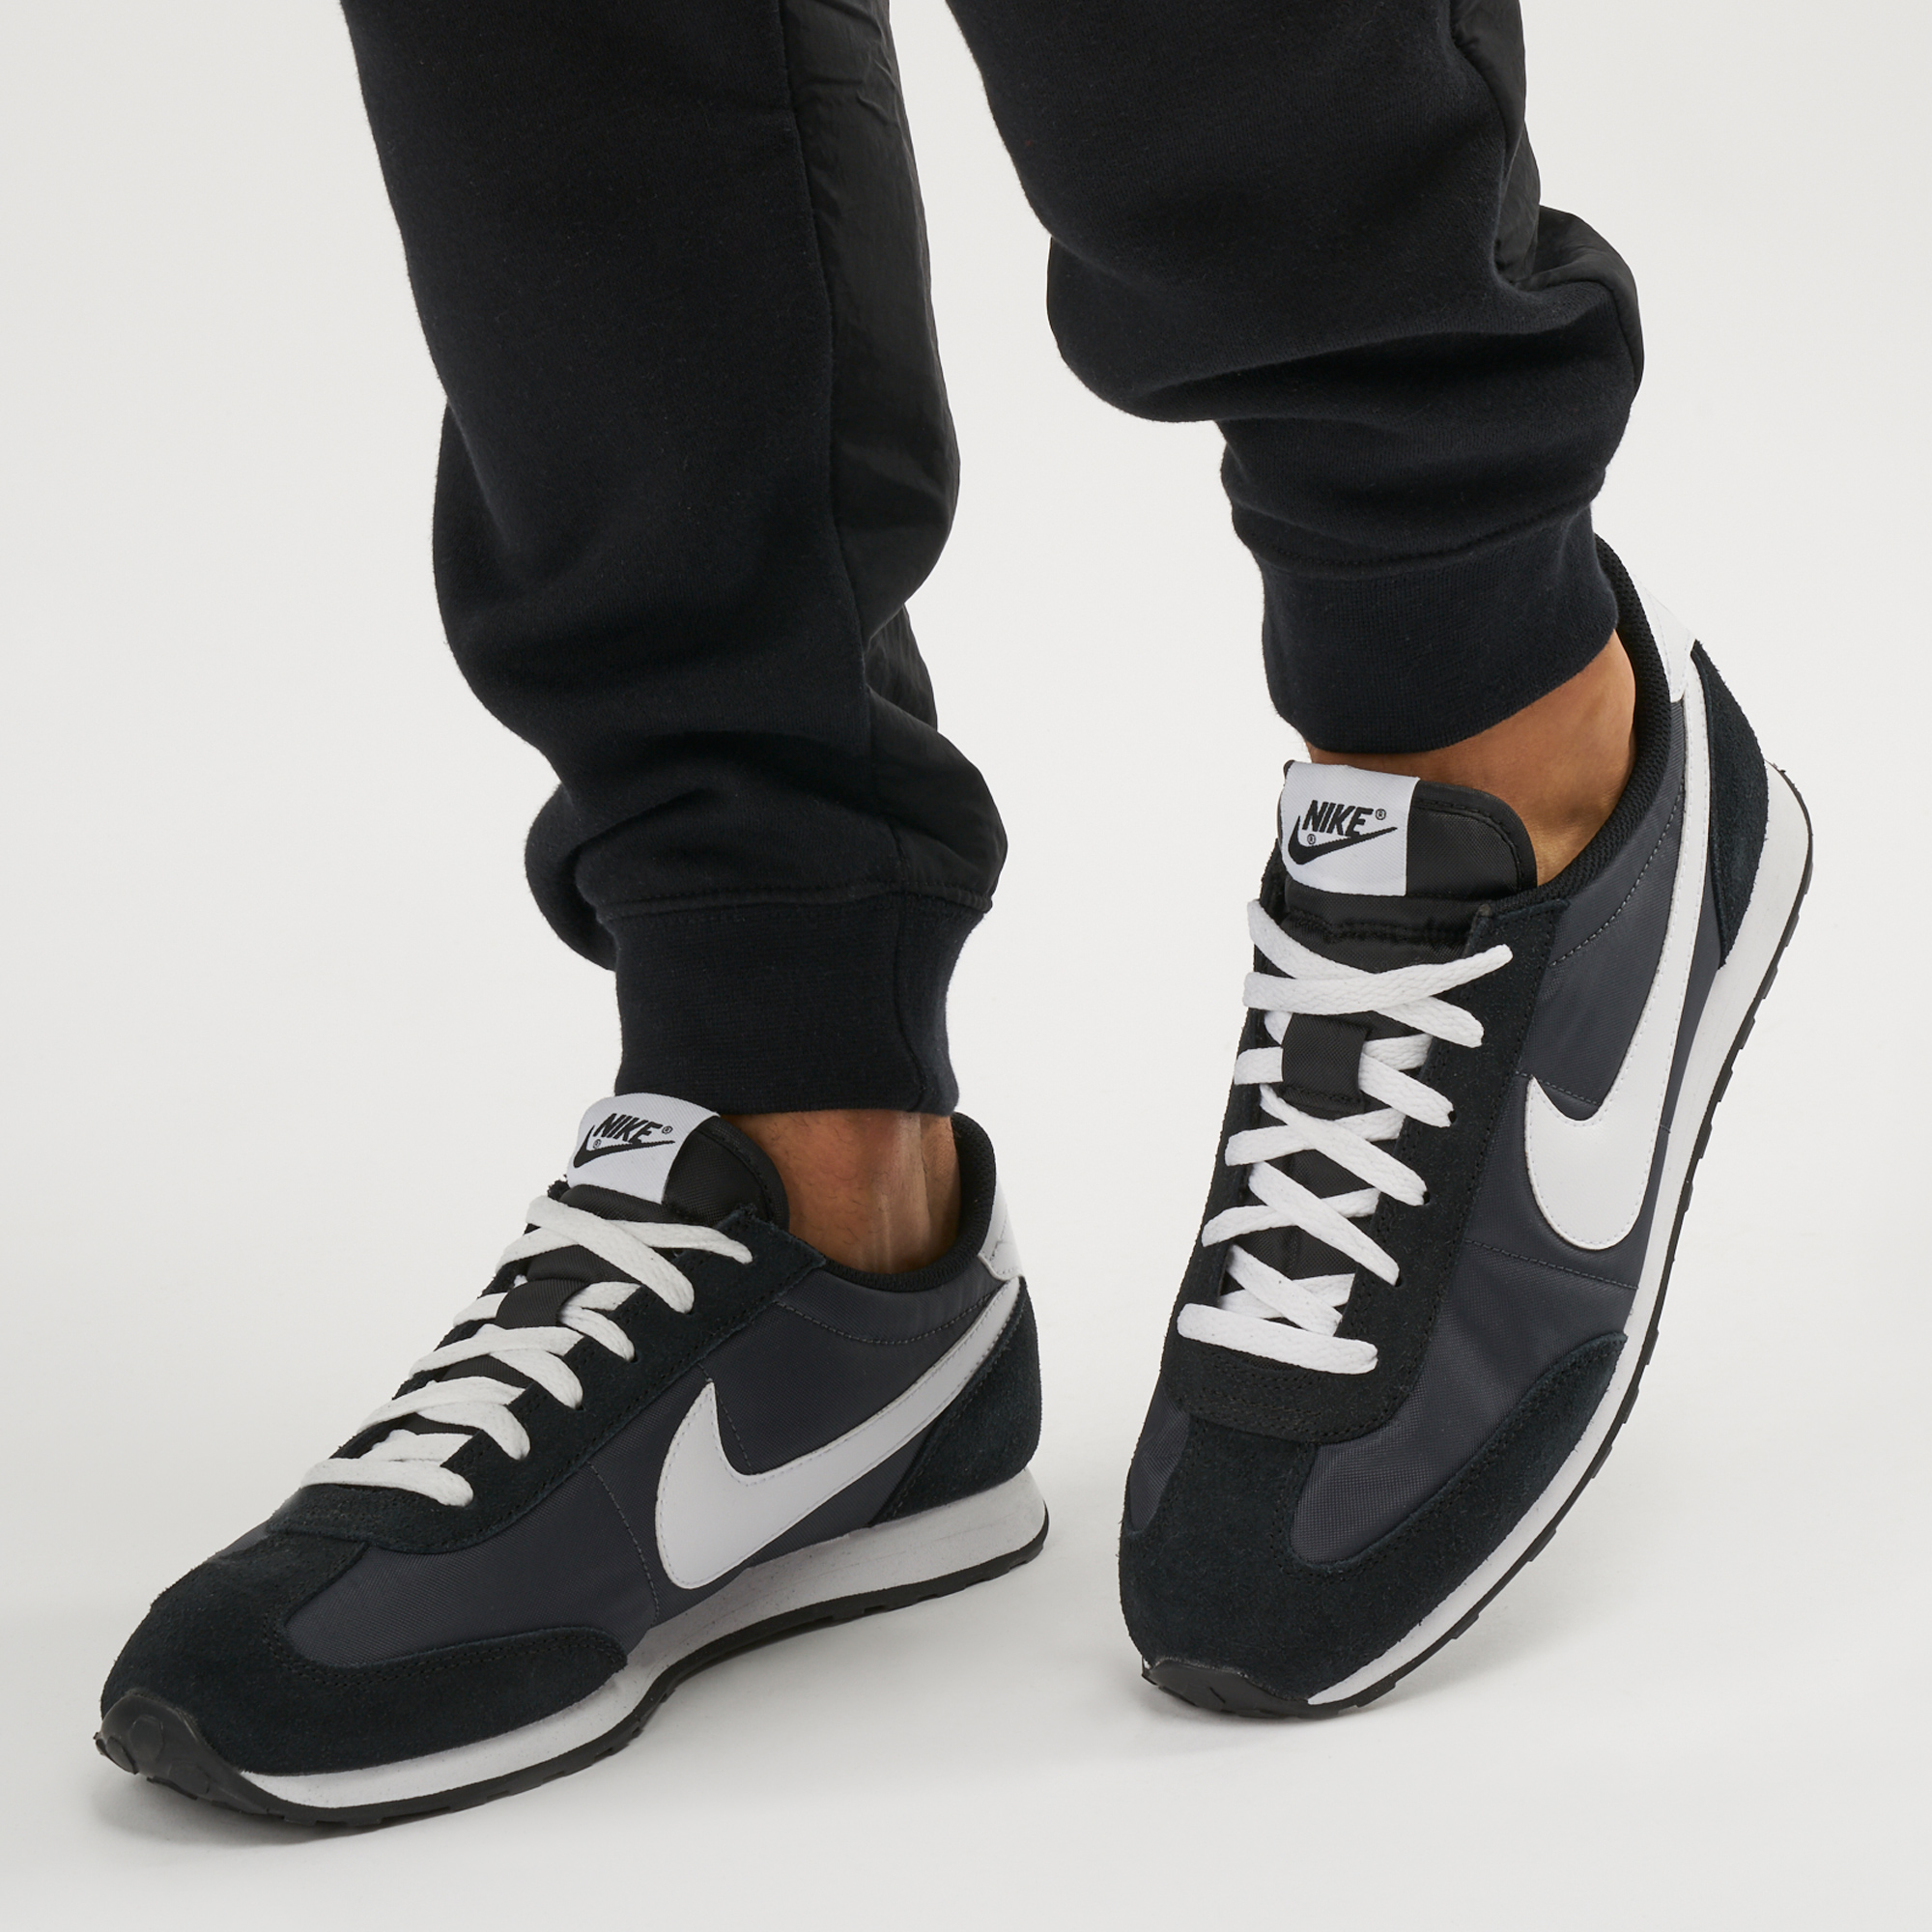 nike mach runner shoes off 54% - www